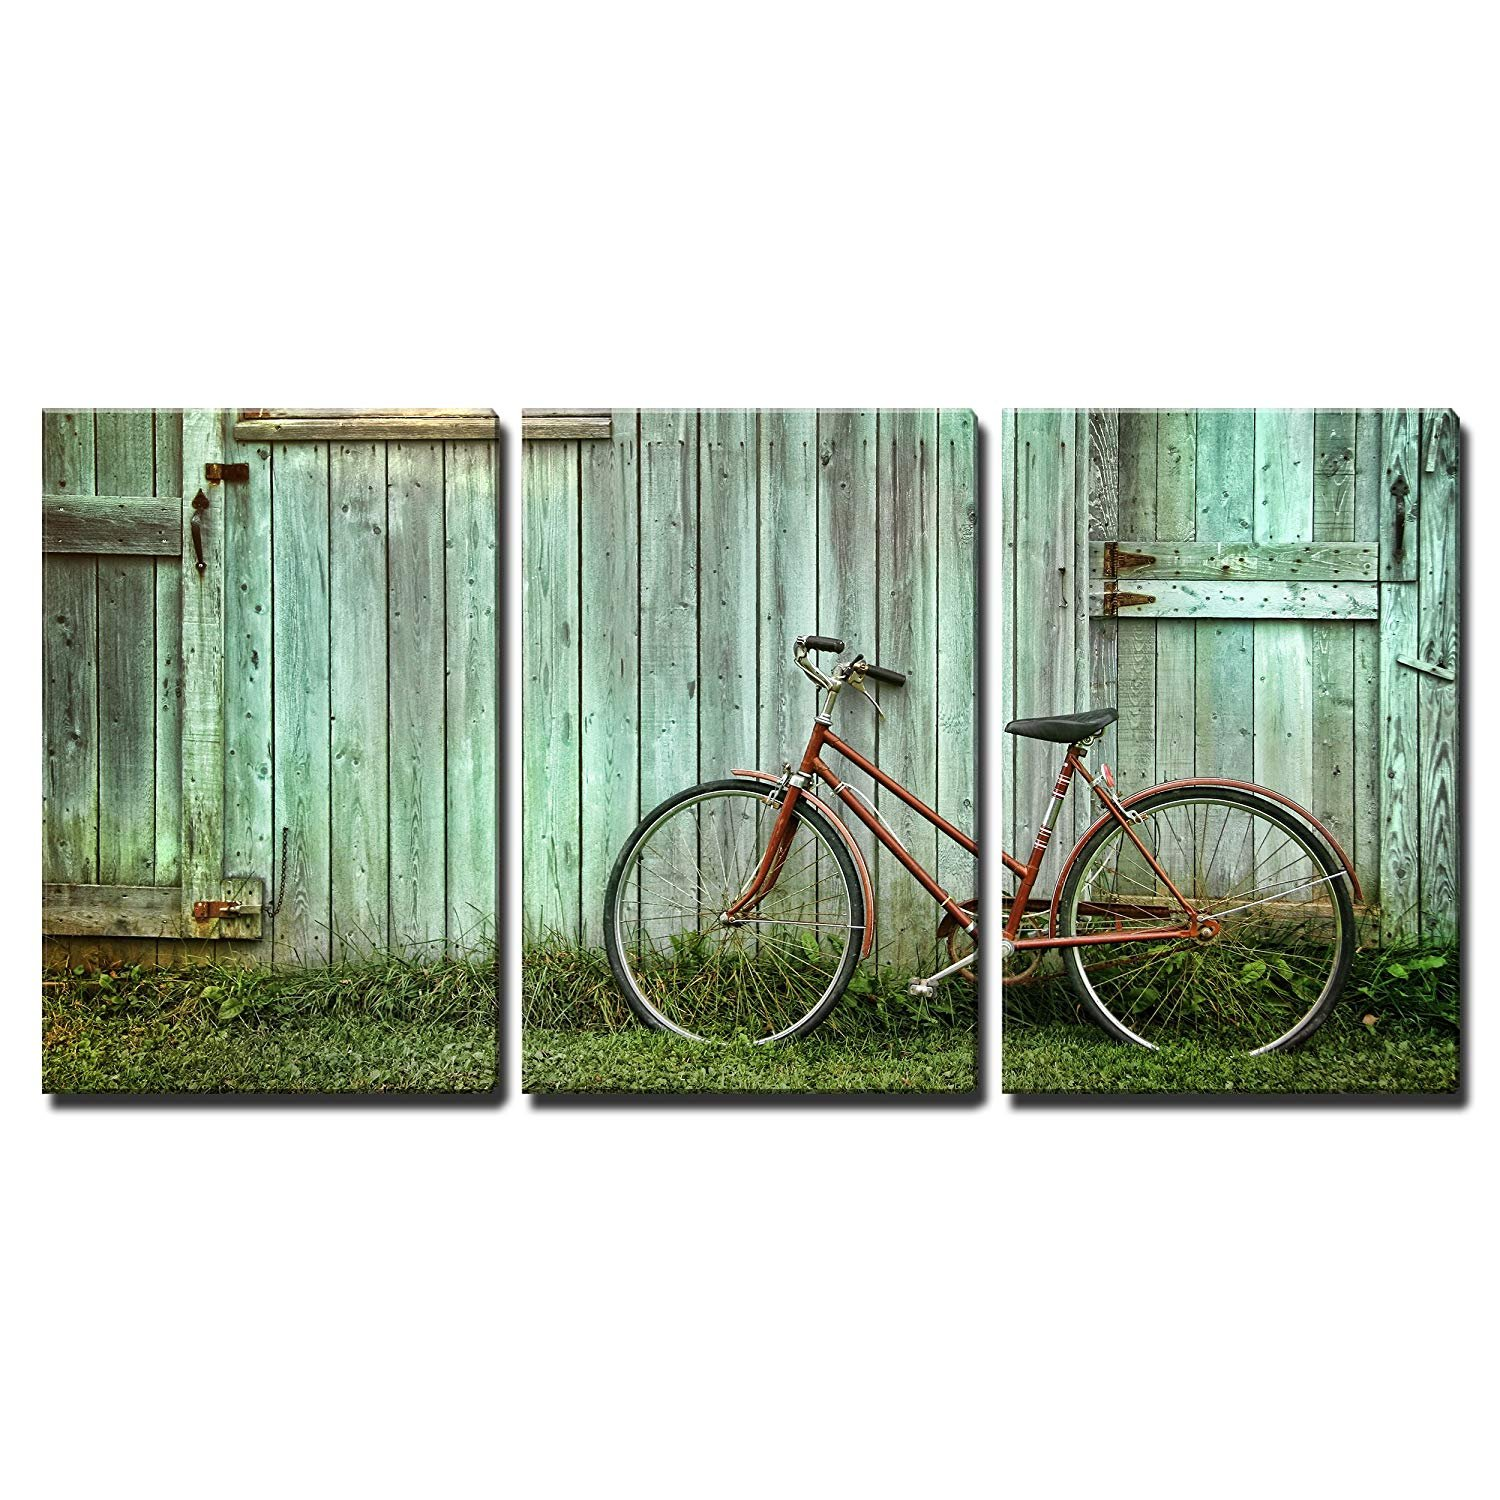 """wall26 - 3 Piece Canvas Wall Art - Old Bicycle Leaning Against Grungy Barn - Modern Home Decor Stretched and Framed Ready to Hang - 24""""x36""""x3 Panels"""